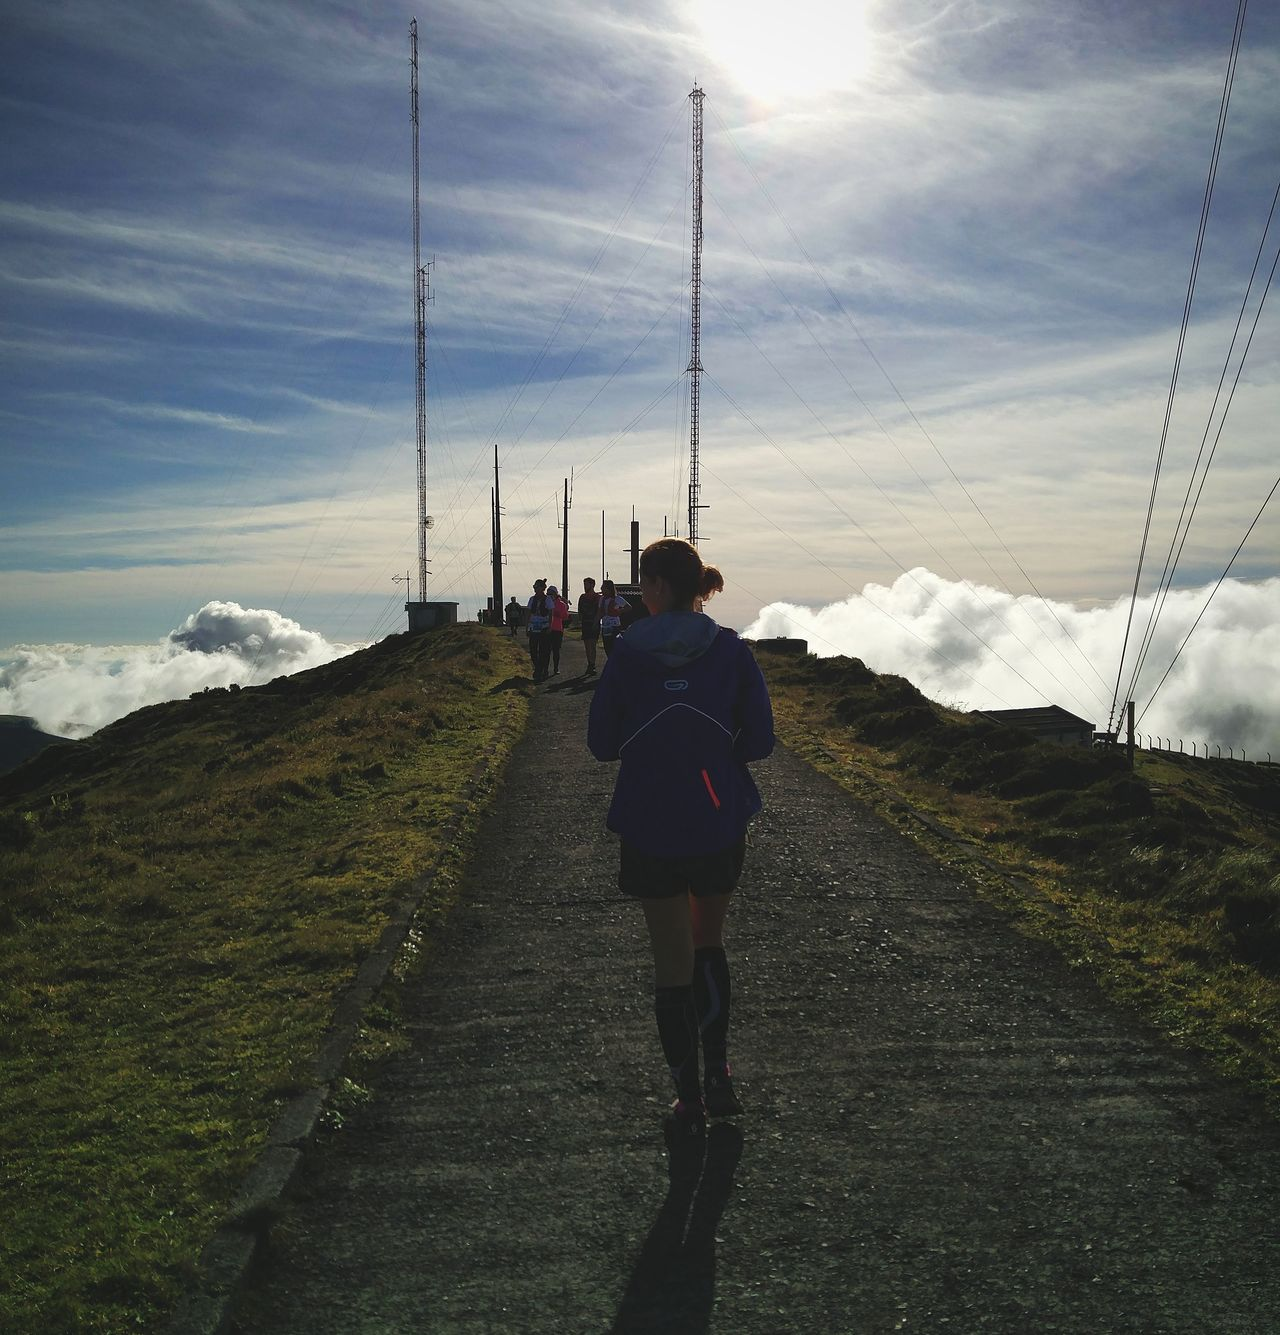 Eyeemportugal EyeEm Porto Azores Trail Running Landscape Travel Destinations Outdoors Outdoors Photograpghy  Walking Around Traveling Photography Horizon Picoftheday Photooftheday Photography Outdoors Photograpghy  Taking Pictures Taking Photo Enjoying The View Beauty In Nature Enjoying The Sun Eye4photography  Cloud - Sky